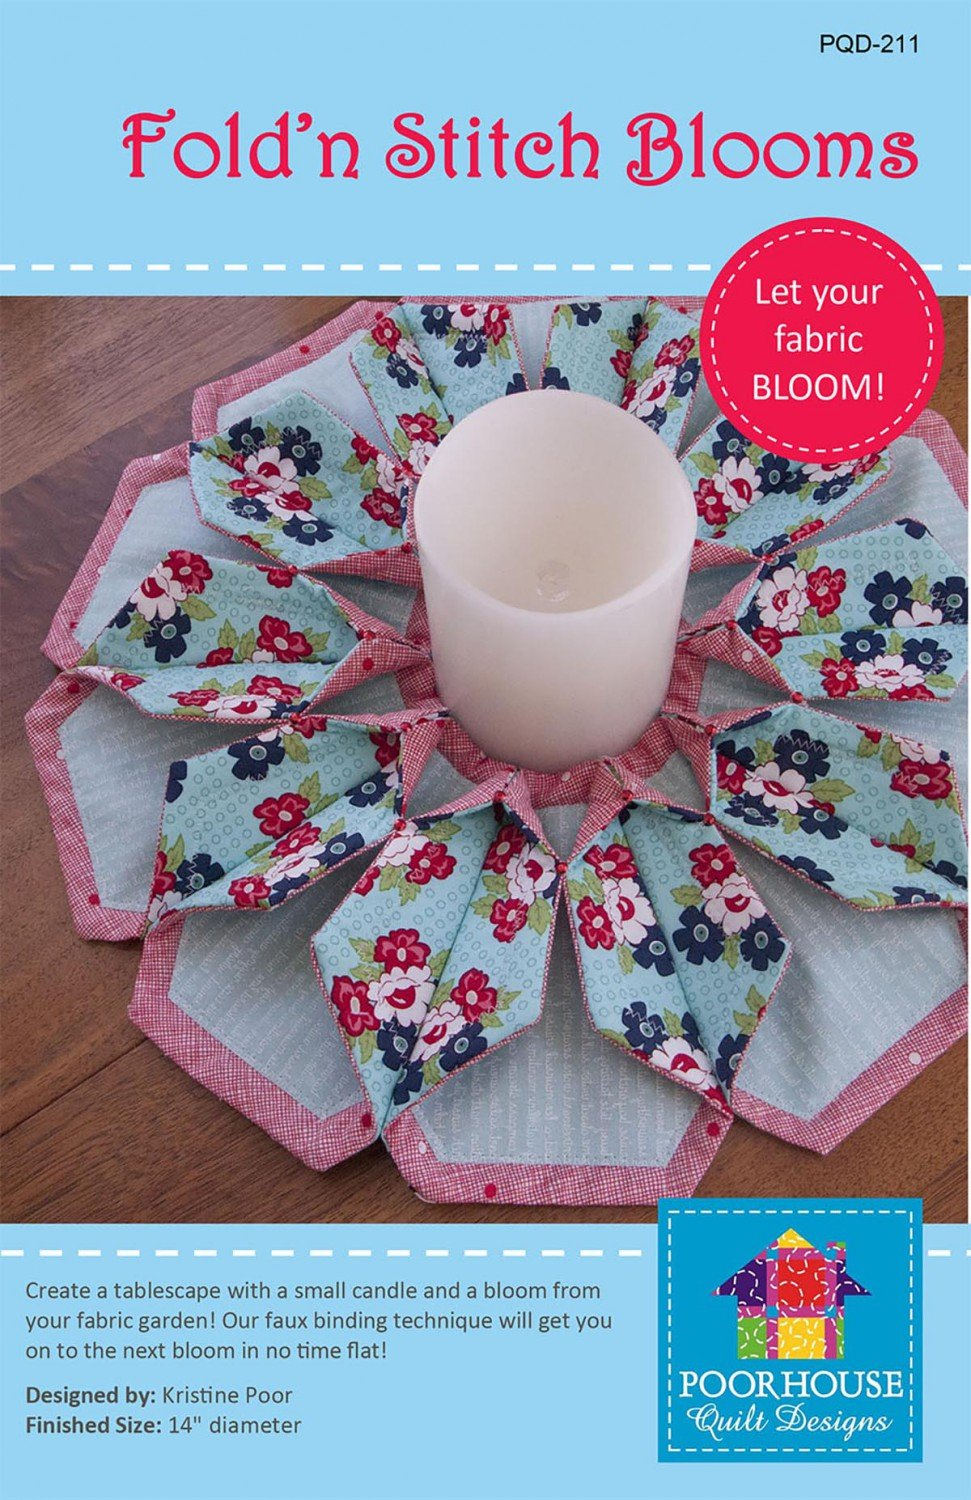 Fold N' Stitch Blooms Pattern by Poorhouse Quilt Designs